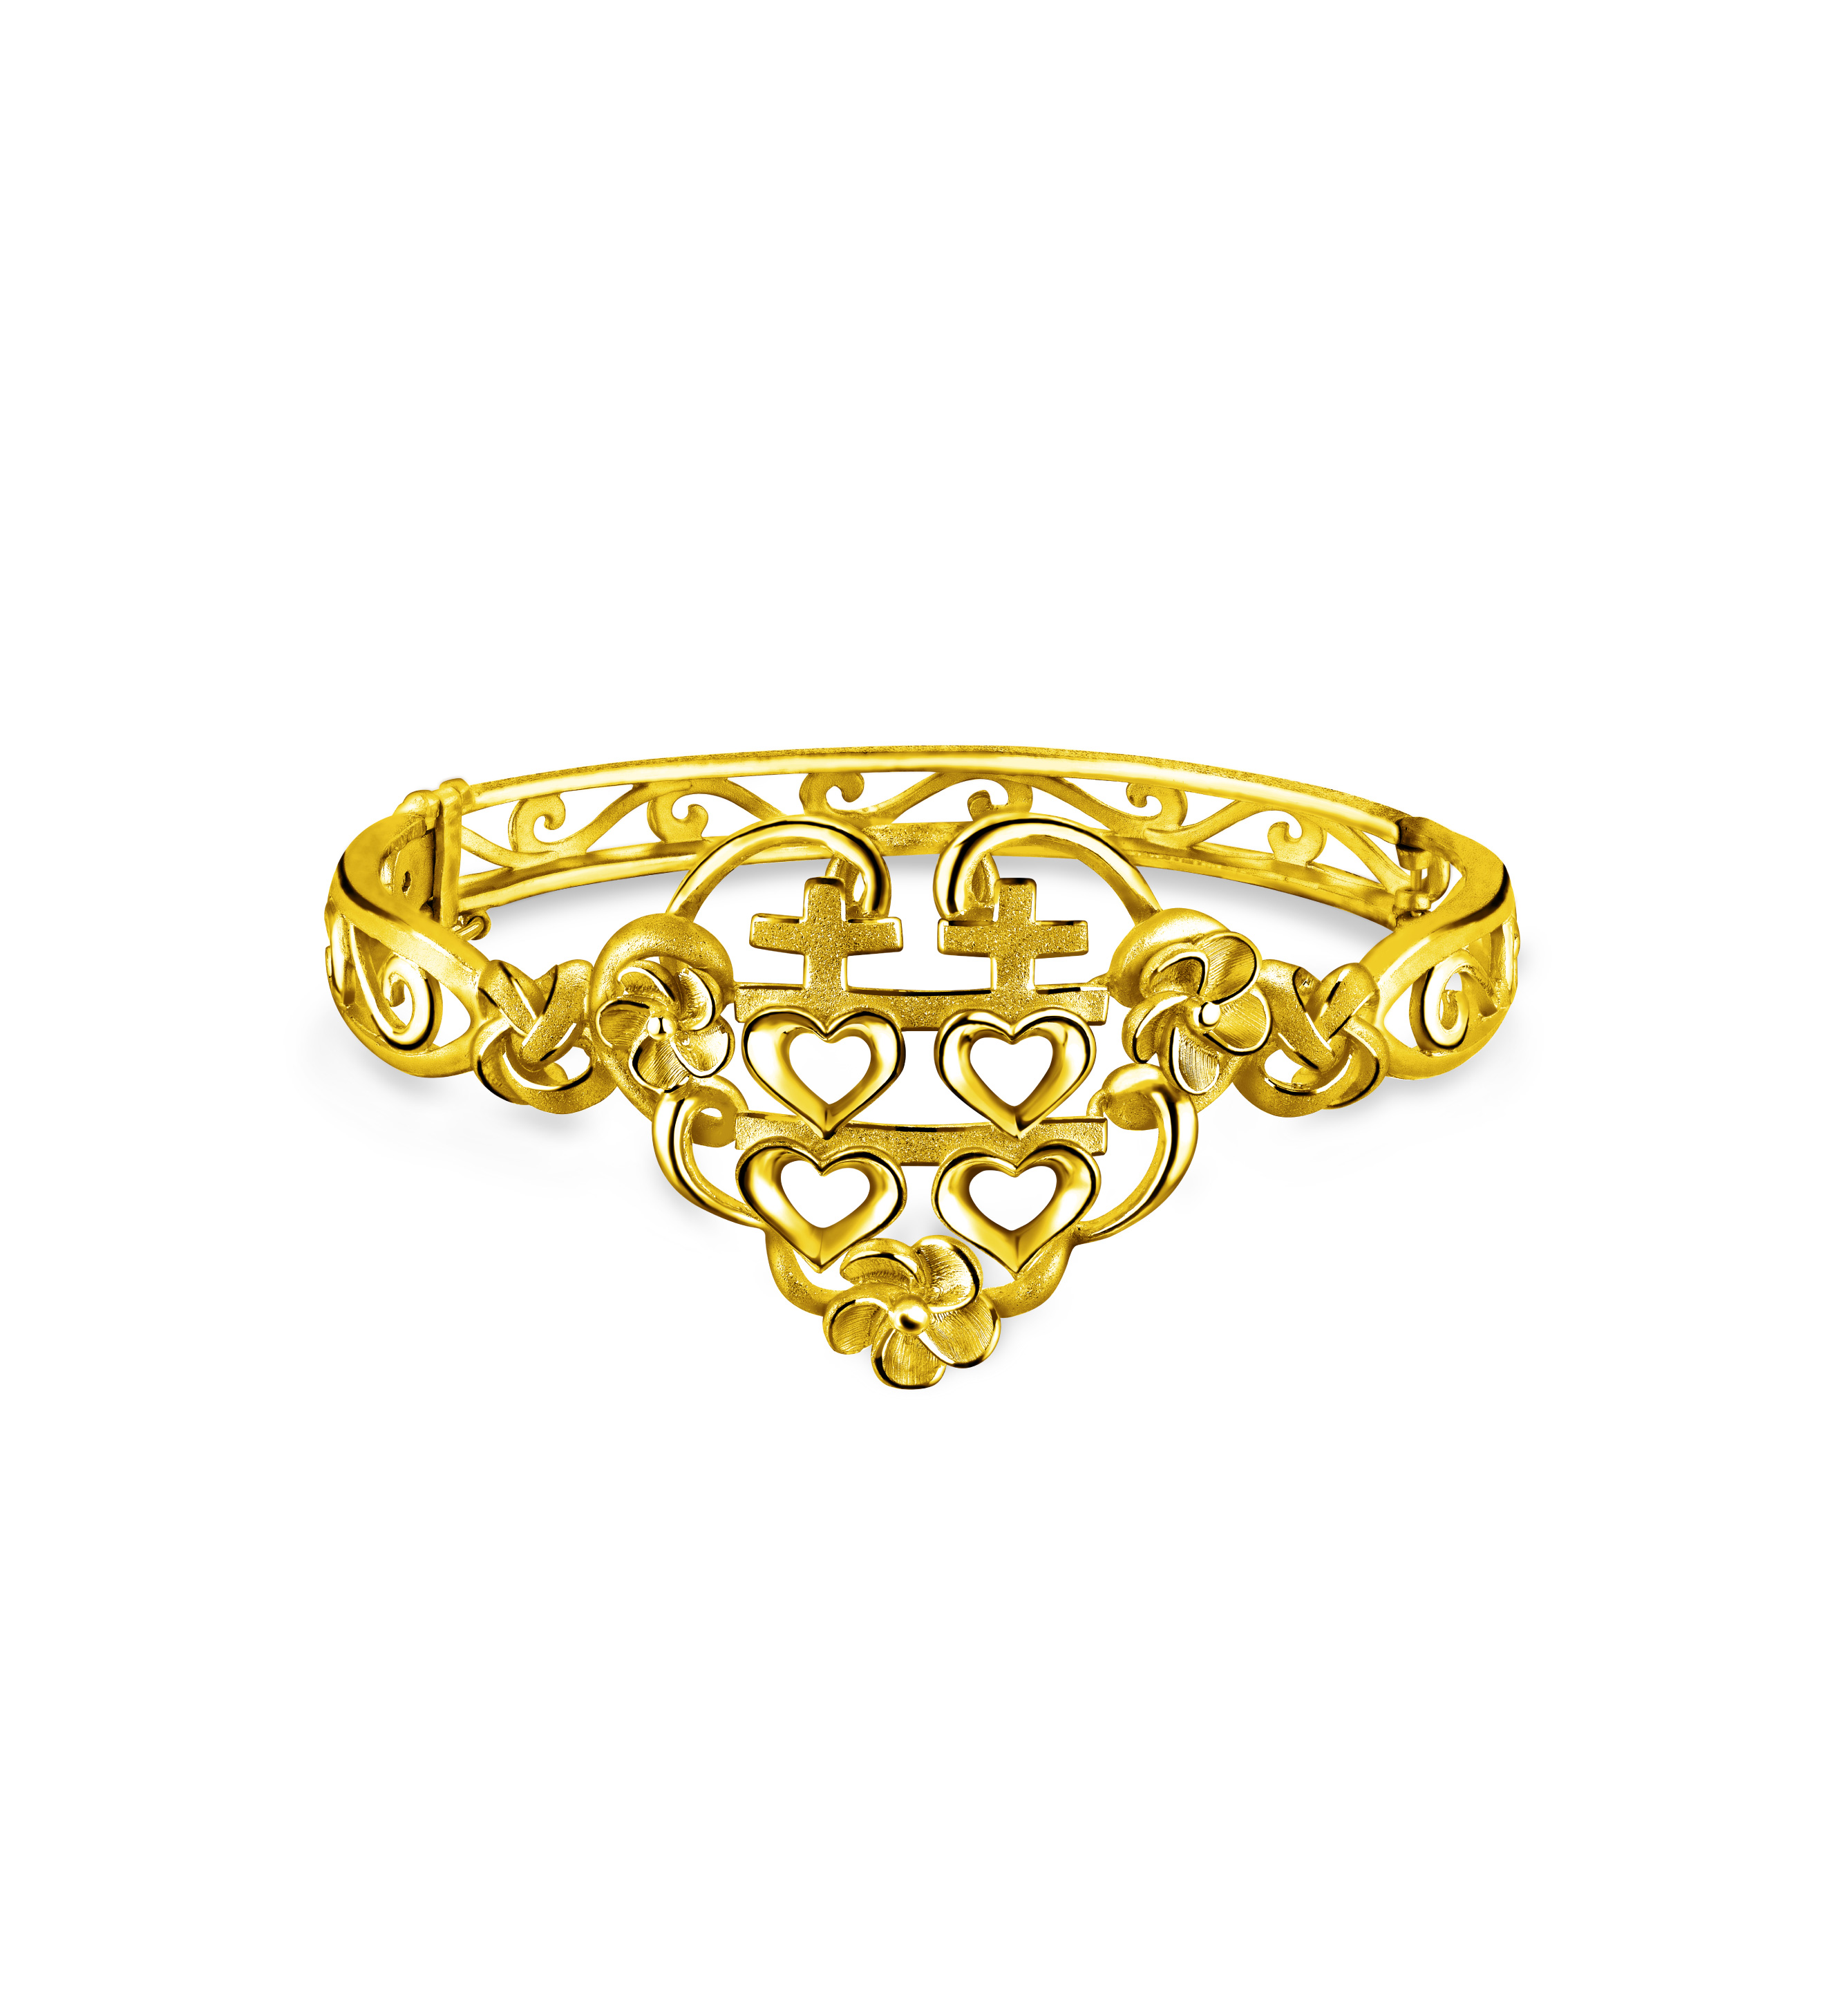 Beloved Collection Blissful Union Bangle